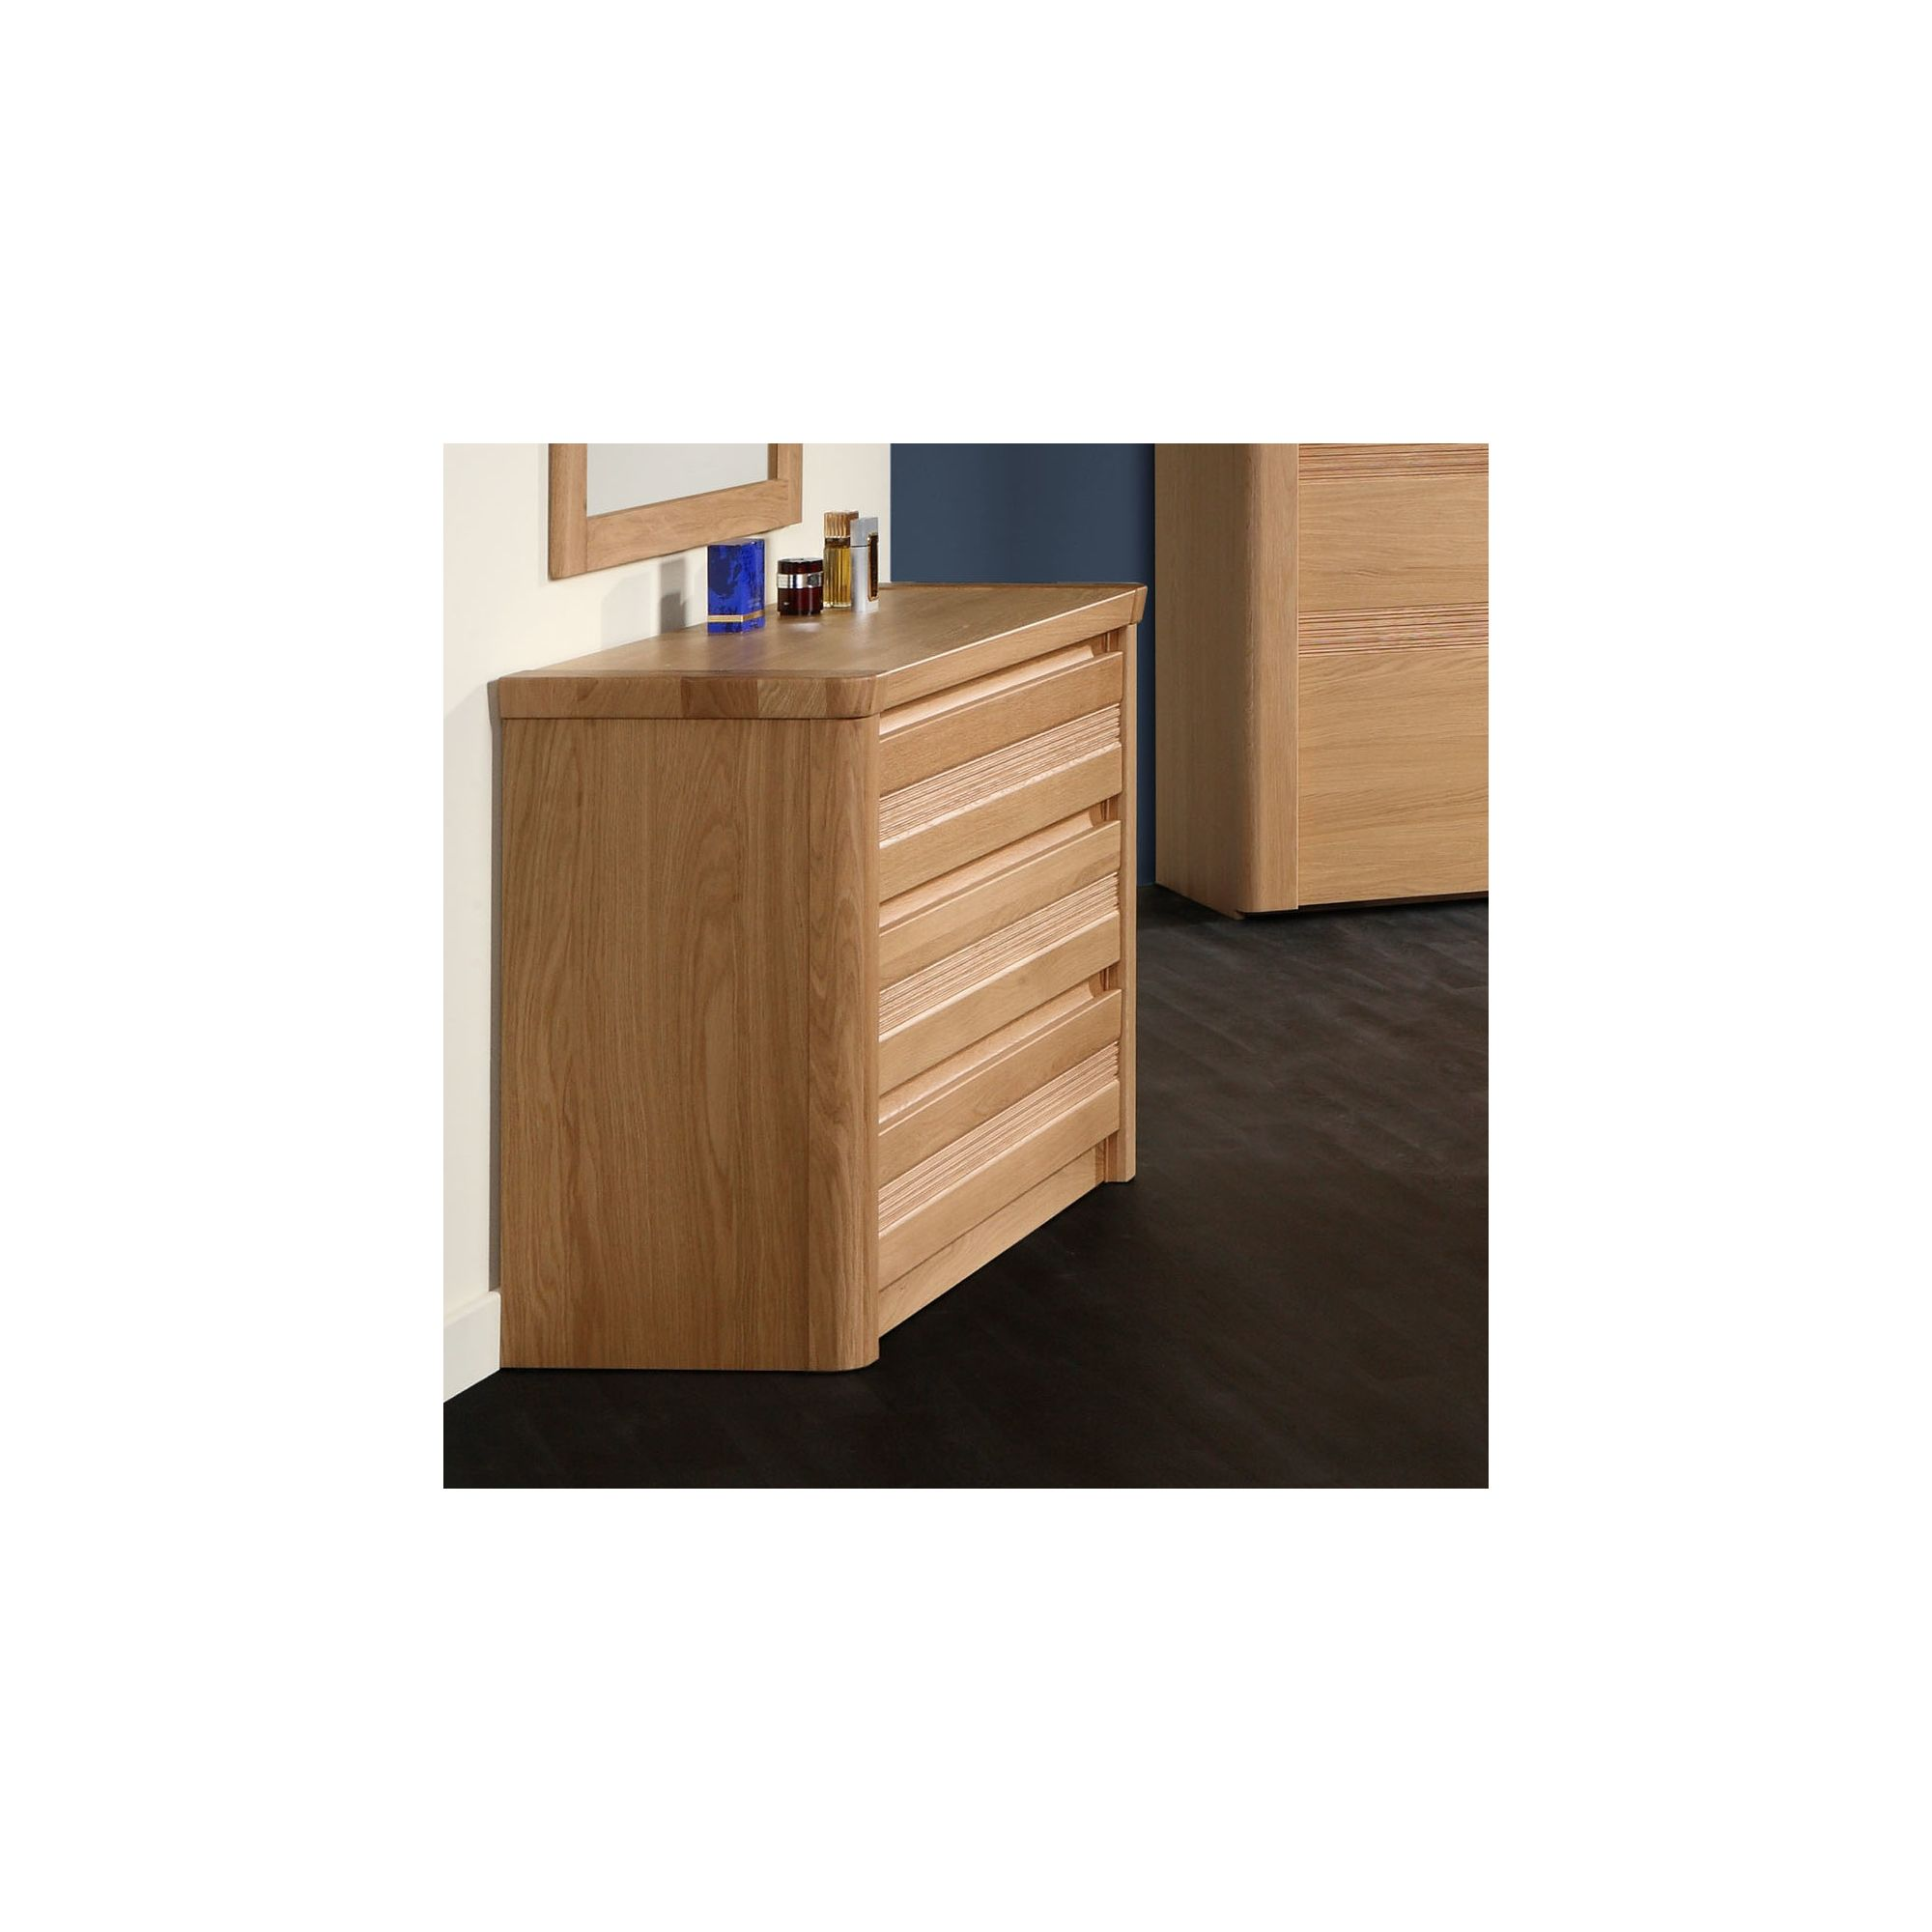 Sleepline Mundo Narrow 3 Drawer Chest - Mat Lacquered at Tesco Direct